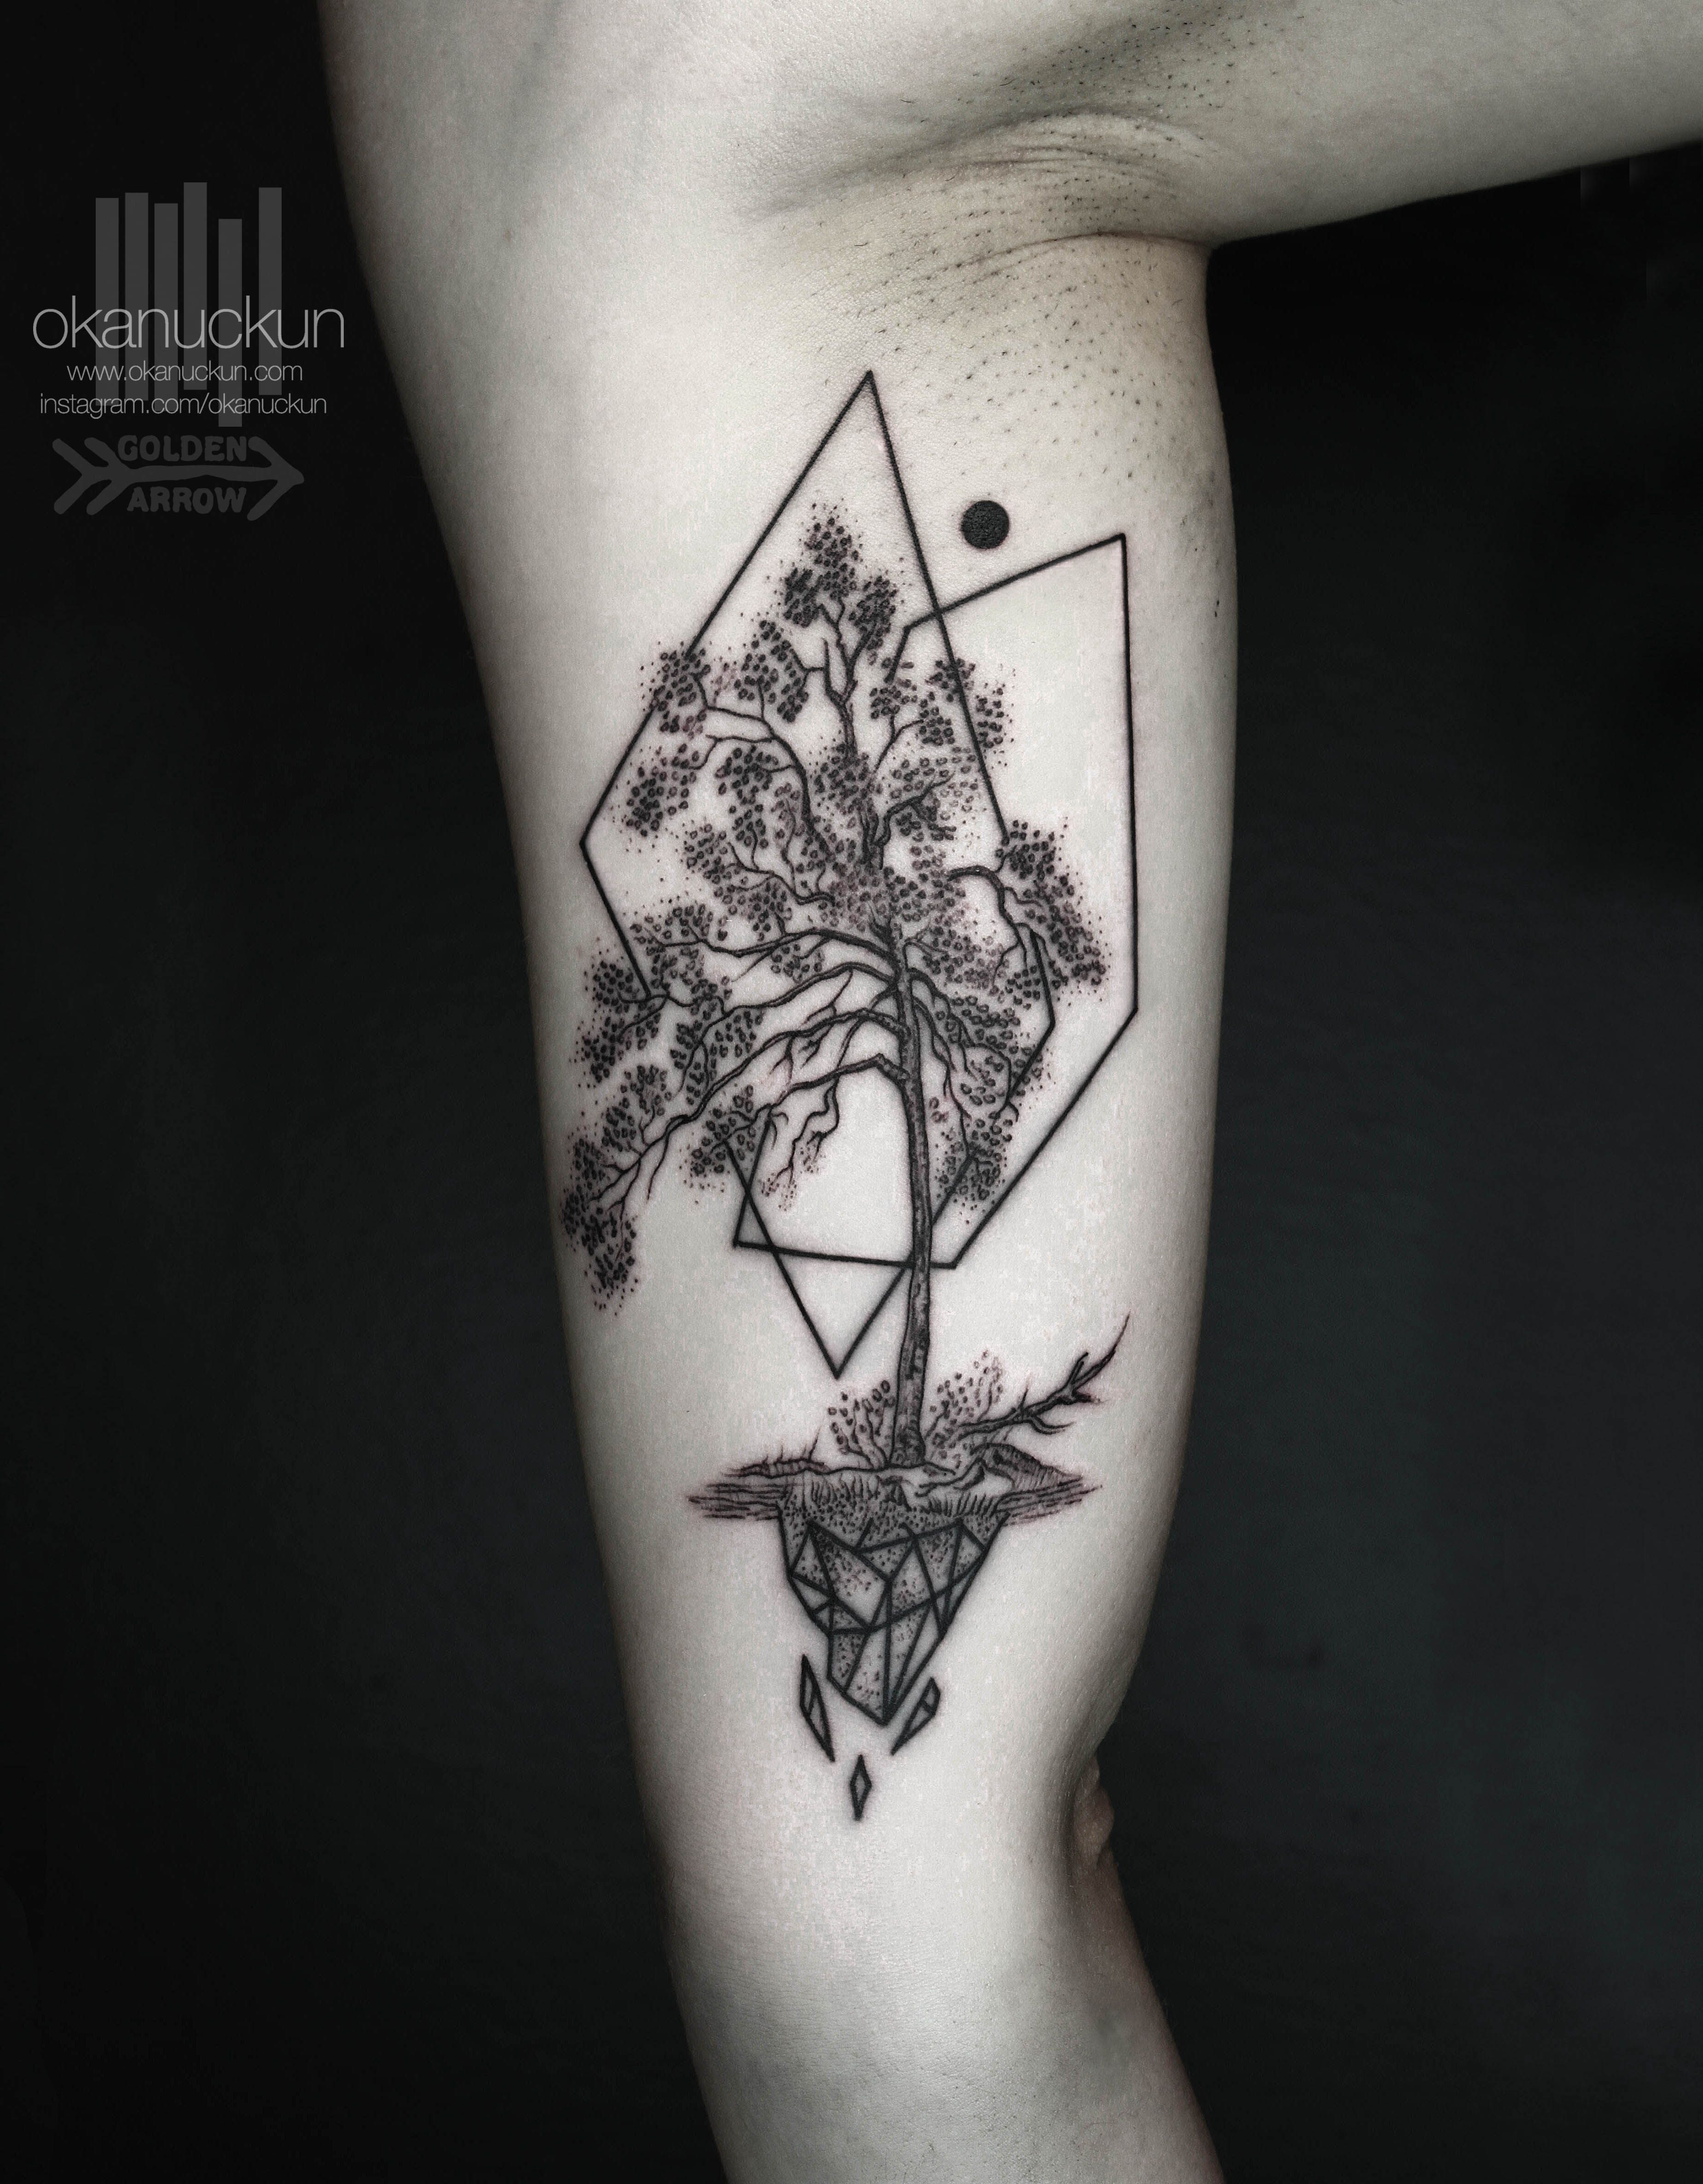 Tree Geometric Linework Tattoo Abstract Triangle Okanuckun Turkey Imnotminimal Blackwork Bla Surreal Tattoo Simple Tree Tattoo Geometric Tattoo Tree